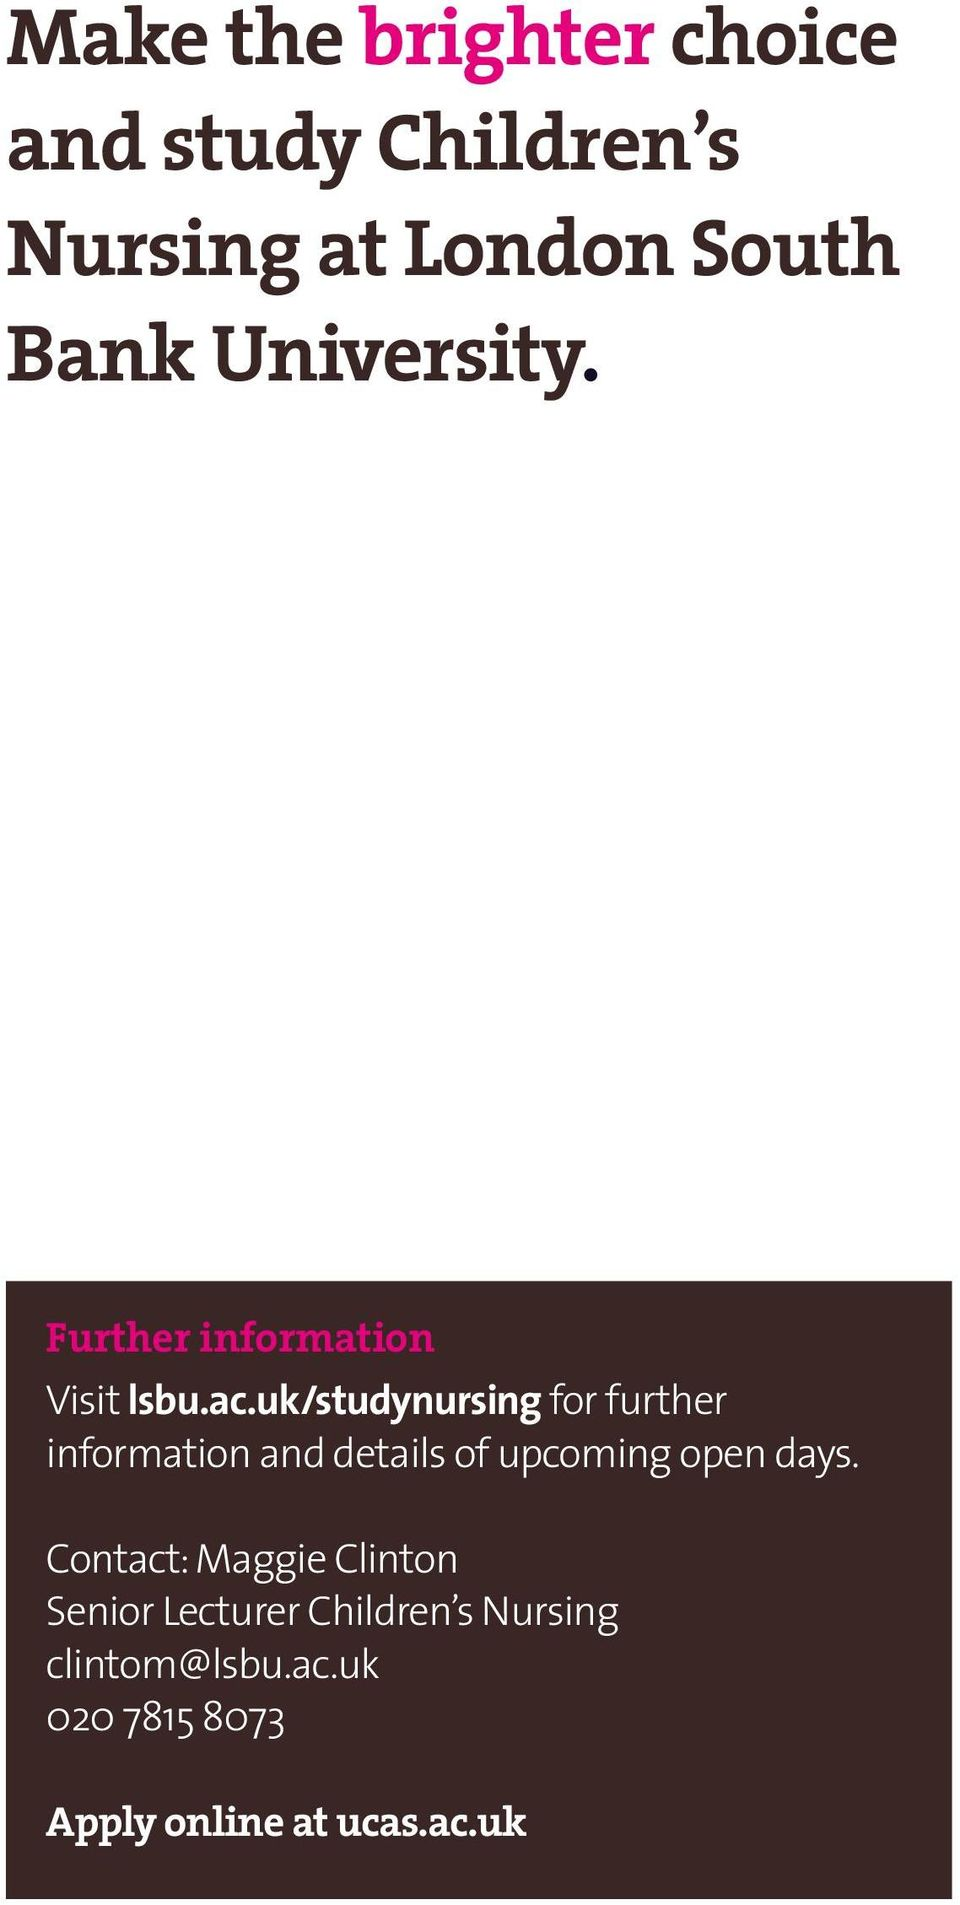 uk/studynursing for further information and details of upcoming open days.